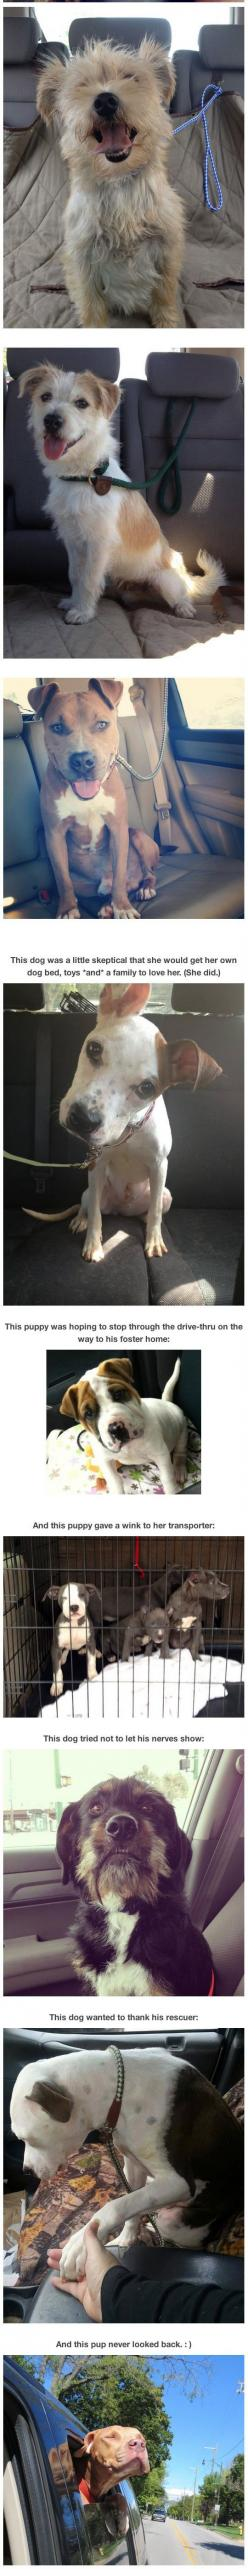 Photos of dogs taken after leaving the shelter and getting in the car…: Animal Rescue, Animal Shelters, Humor Funnypictures, Dogs In Shelters, Animals Dogs, Cars, Photo